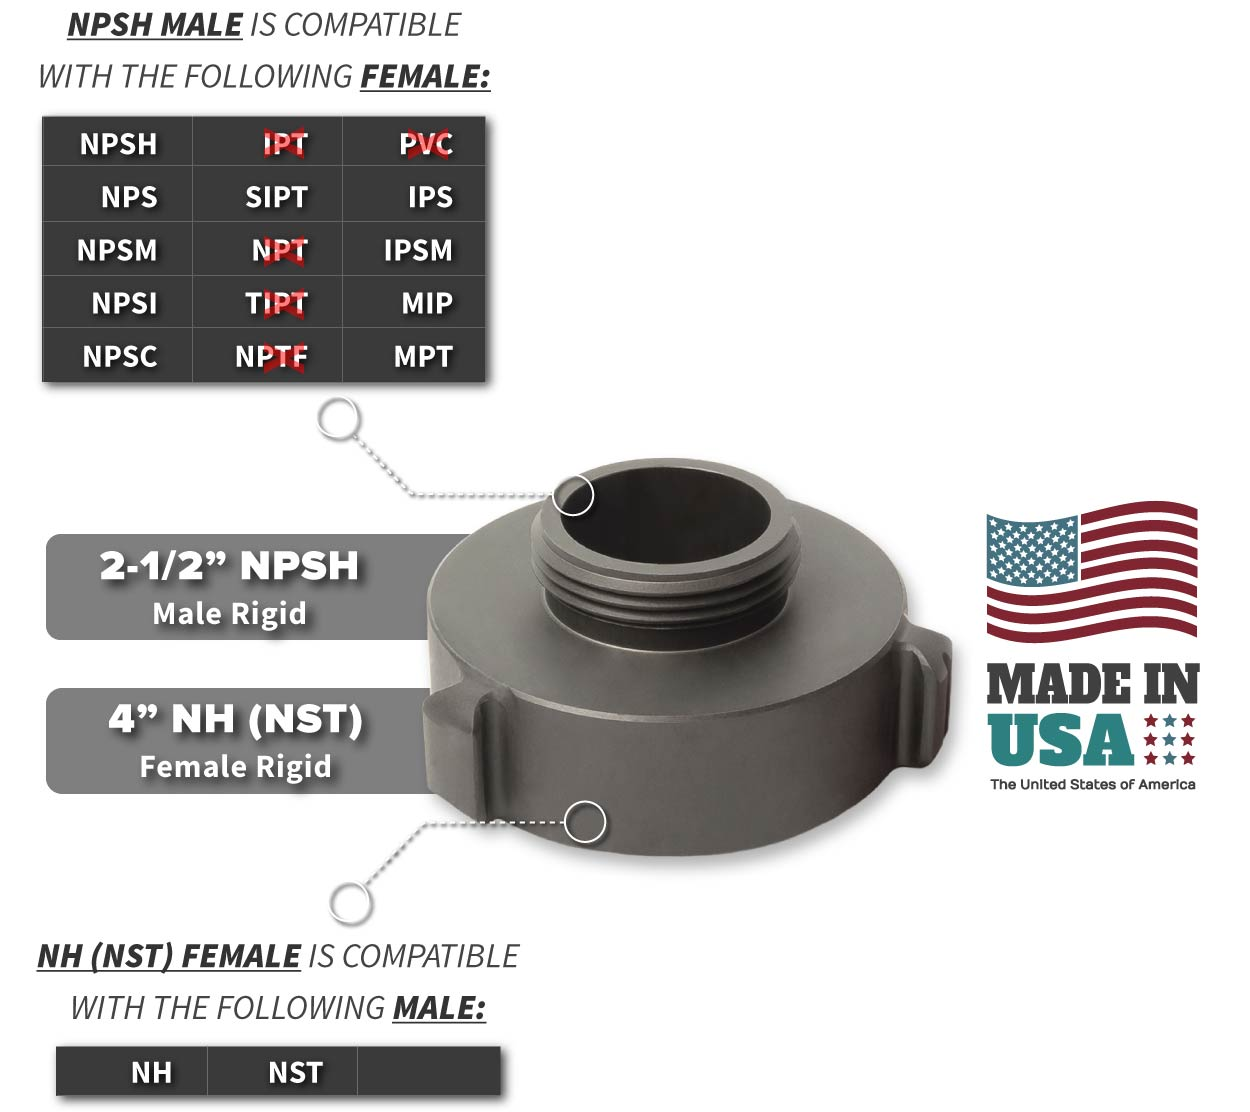 4 Inch NH-NST Female x 2.5 Inch NPSH Male Compatibility Thread Chart